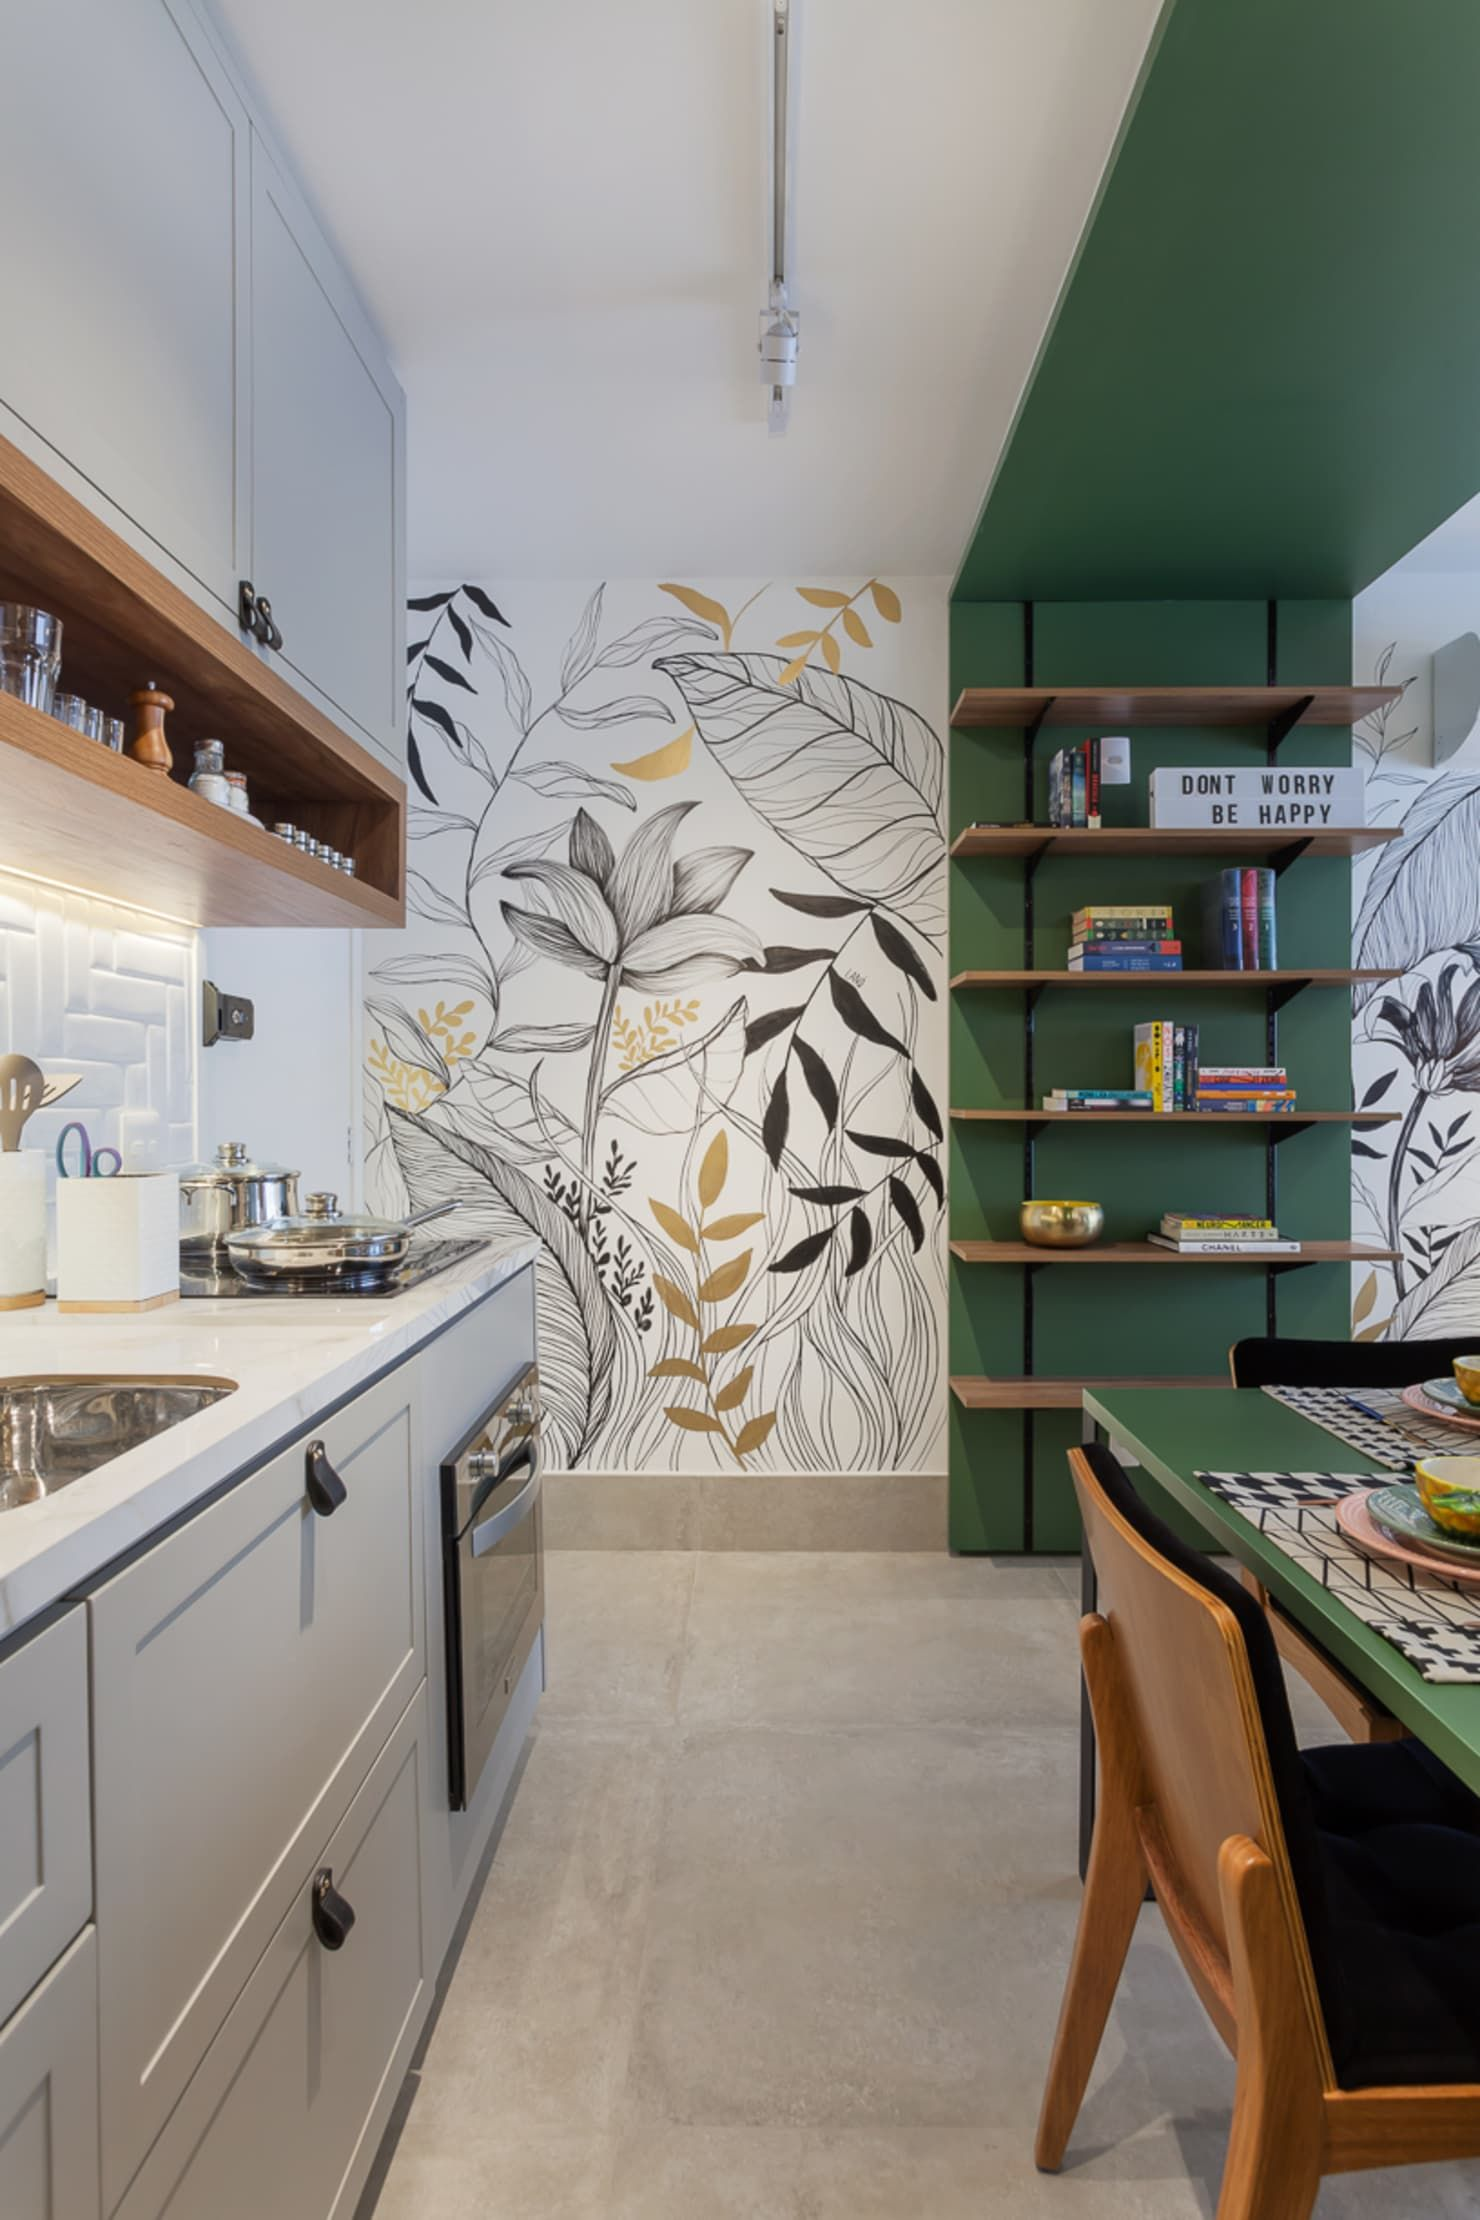 Scenery-wallpapers. 80+ Unusual Kitchen Design Ideas for Small Spaces in 2021